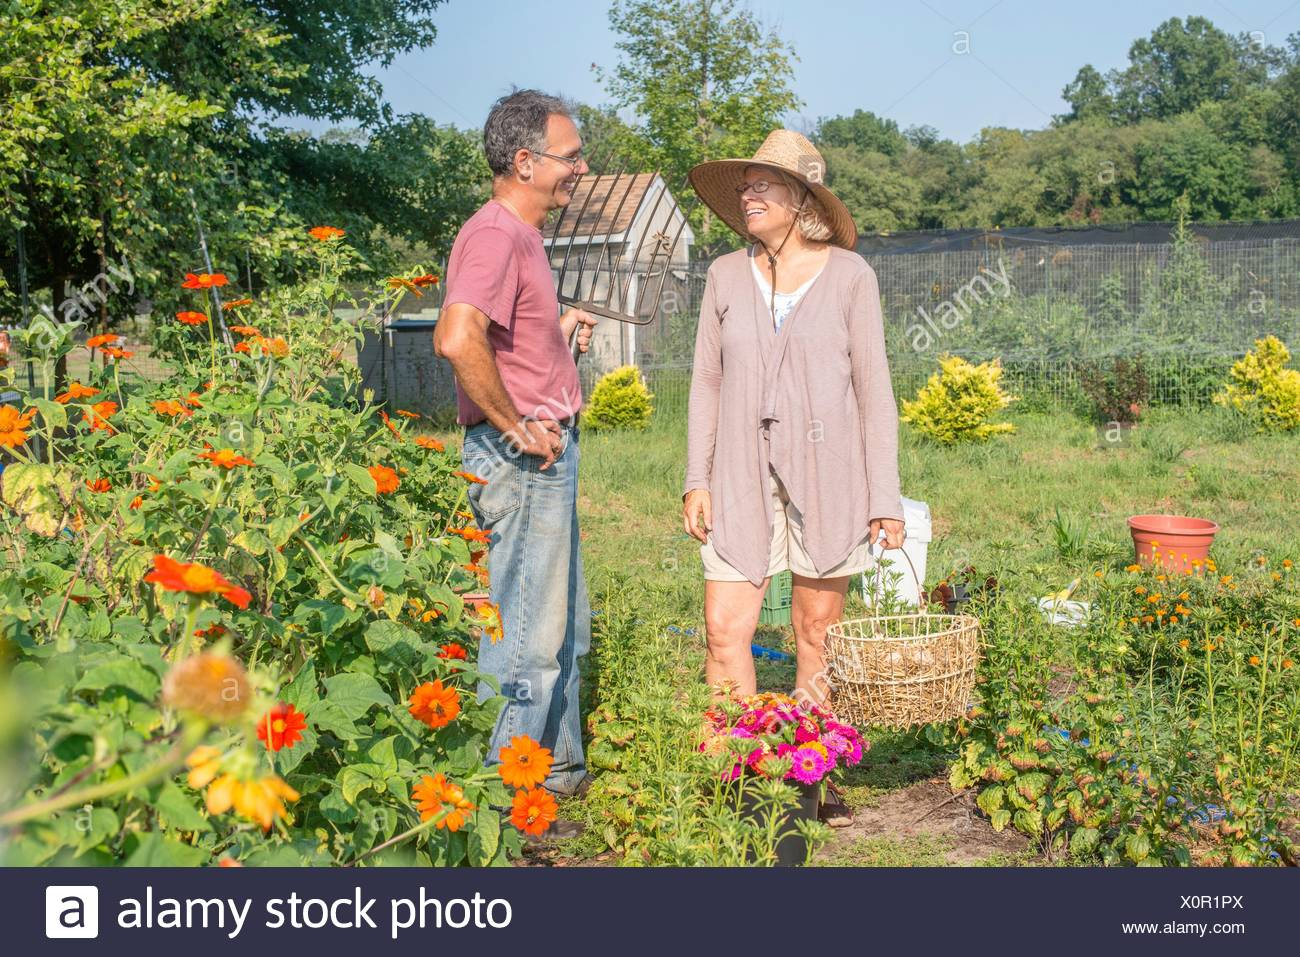 Male and female farmers chatting in garden - Stock Image